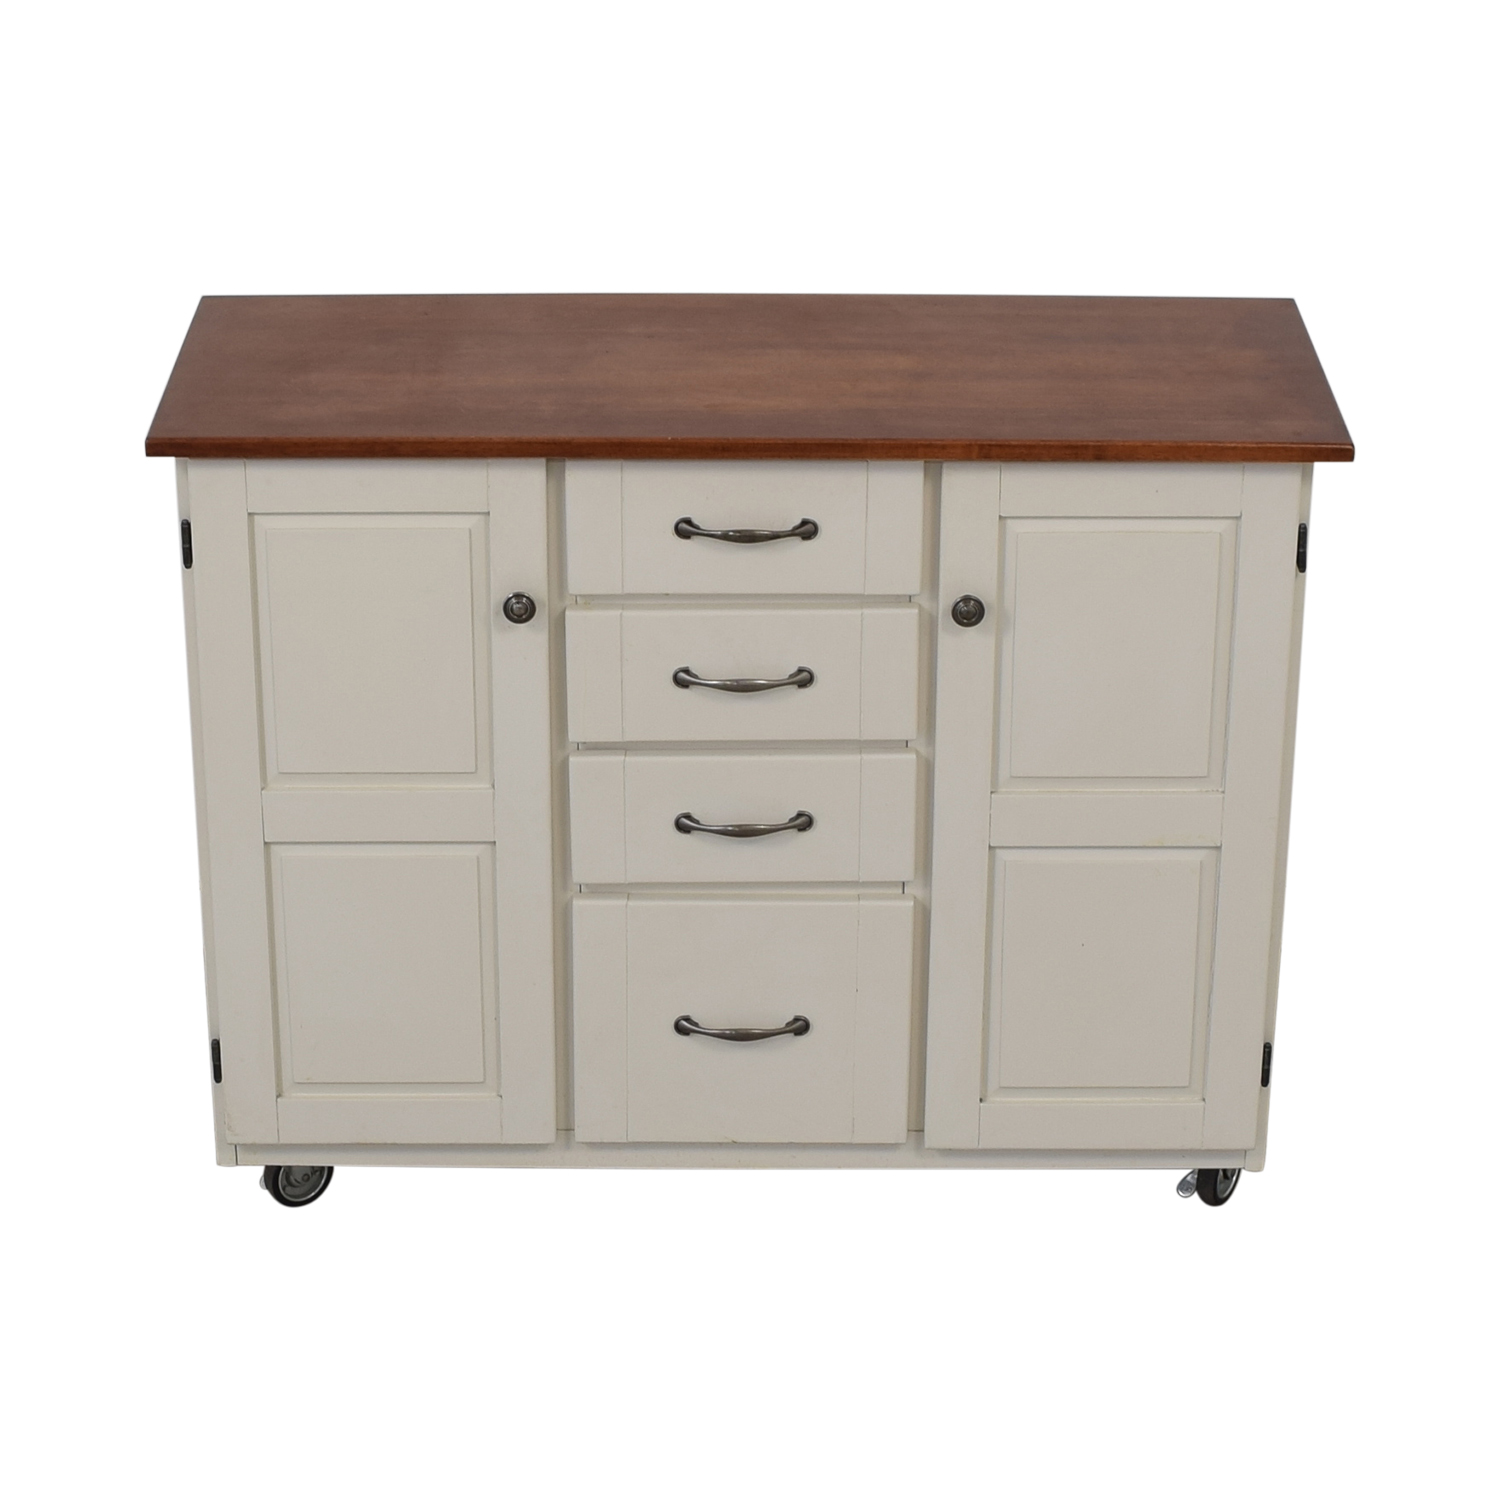 Home Styles Home Styles Kitchen Cart dimensions